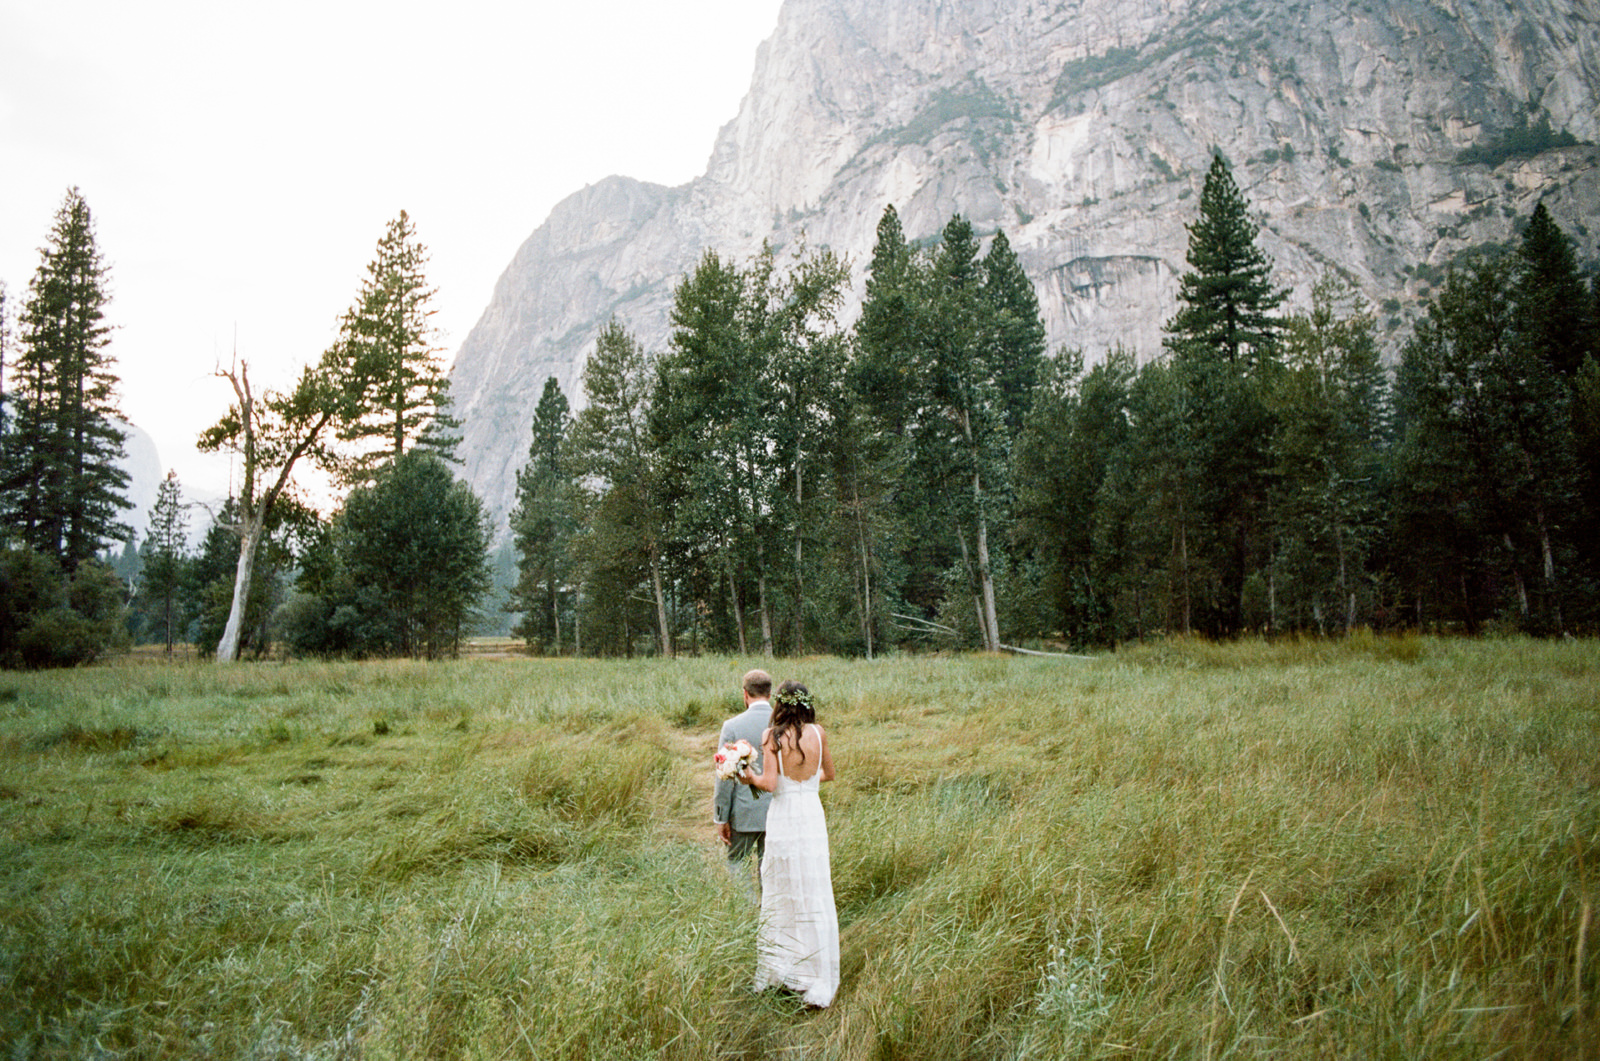 yosemite-intimate-wedding-099 YOSEMITE INTIMATE WEDDING